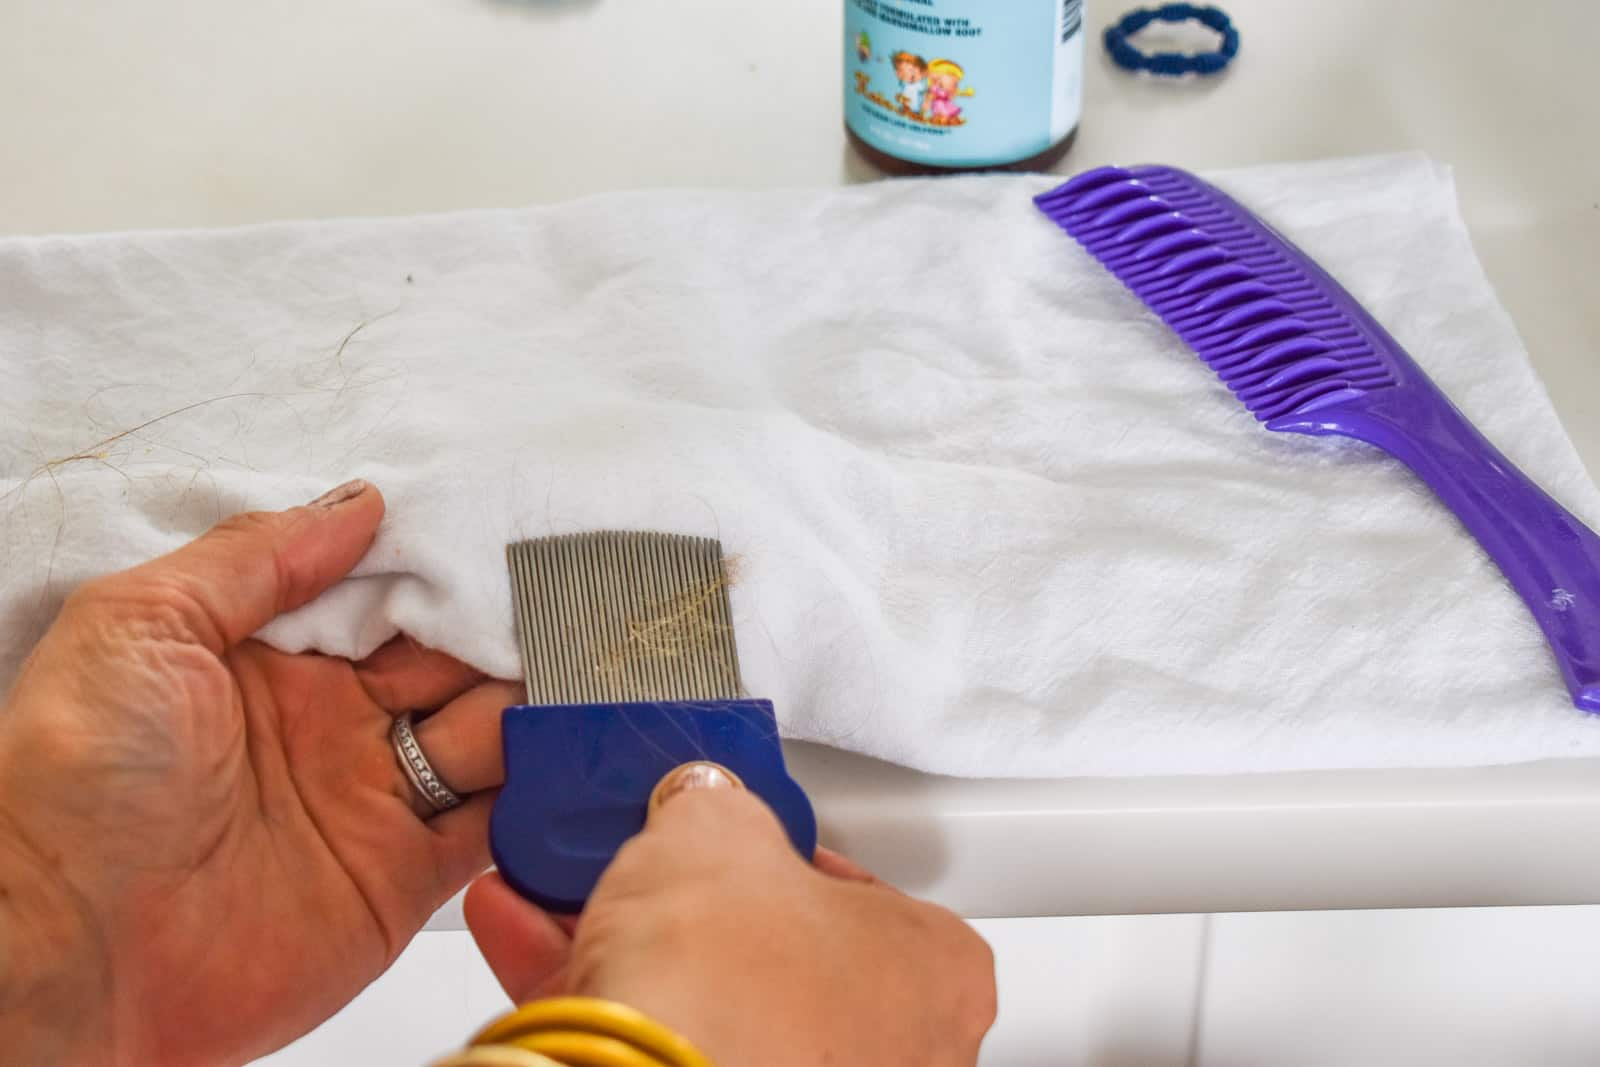 wipe the lice comb off onto a white towel